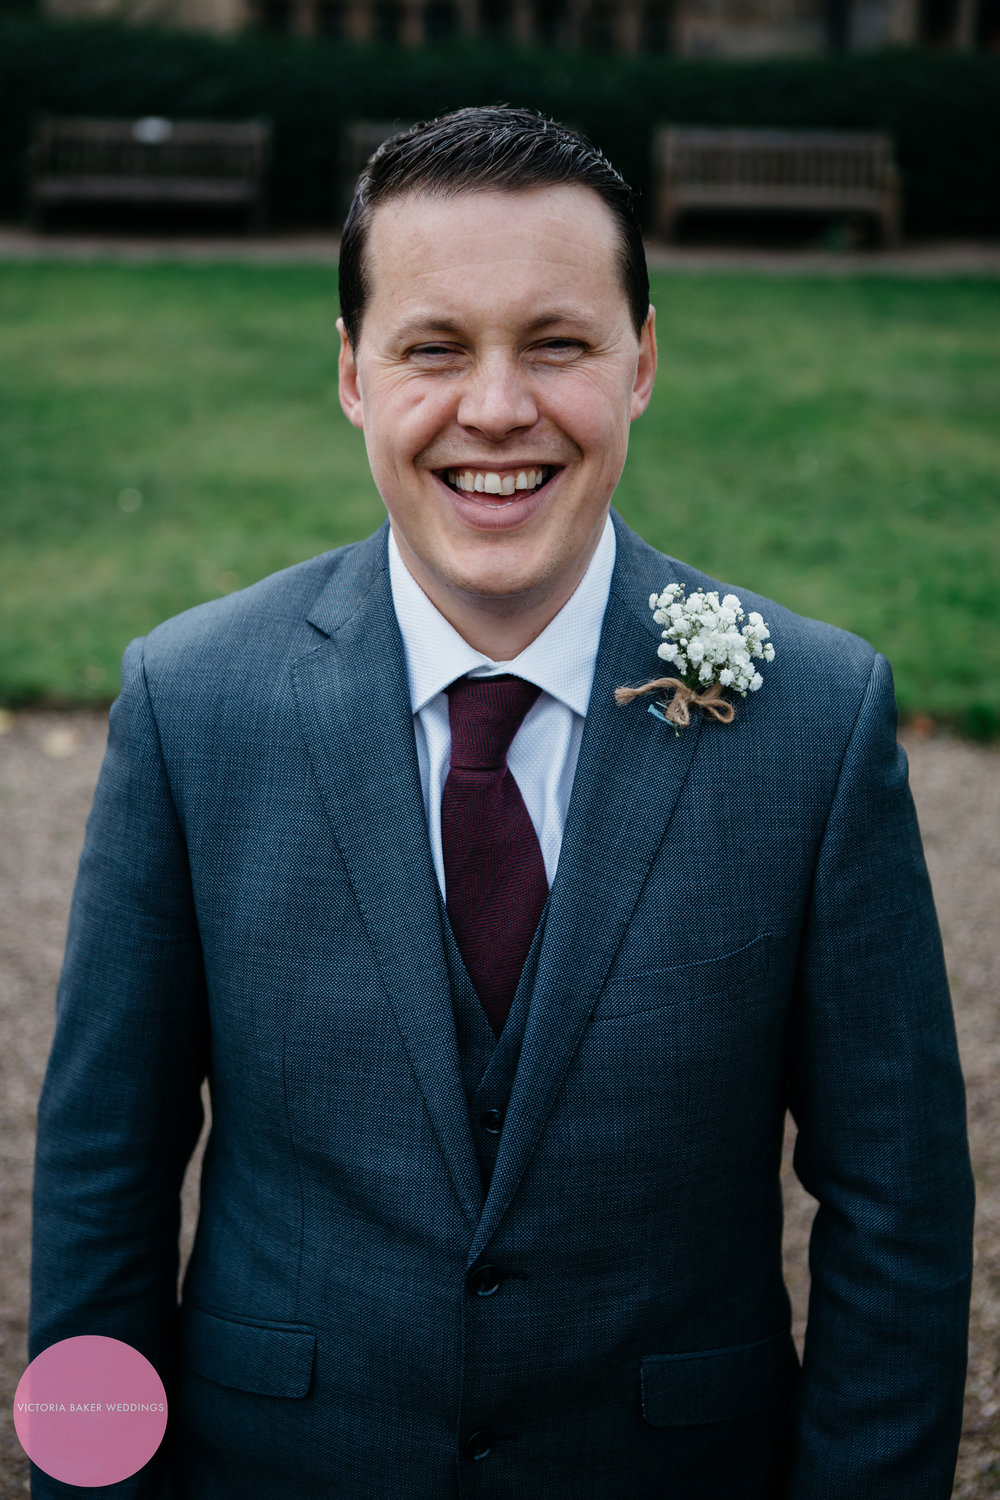 Groom Richard | Wedding Photography Leeds